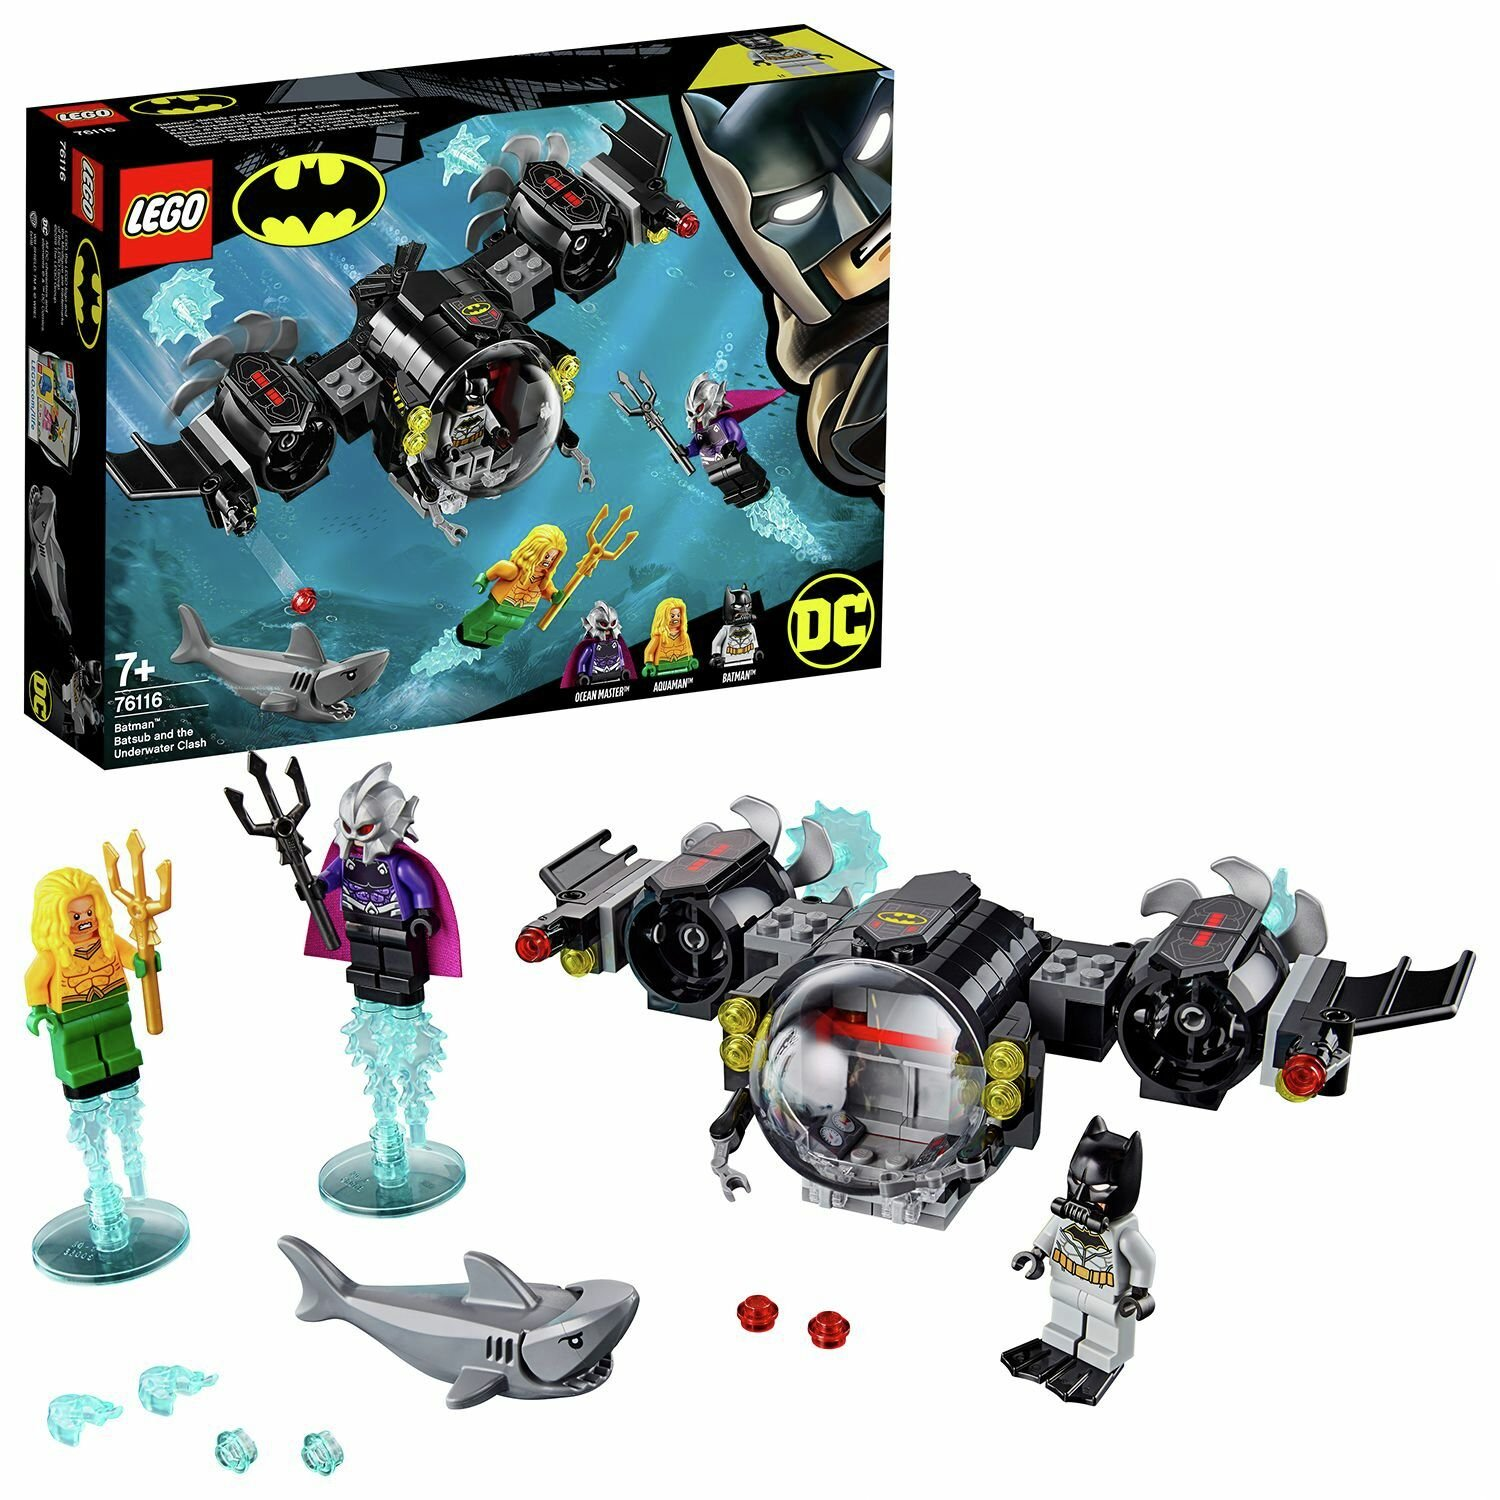 LEGO Super Heroes Batman Water Vehicle - 76116